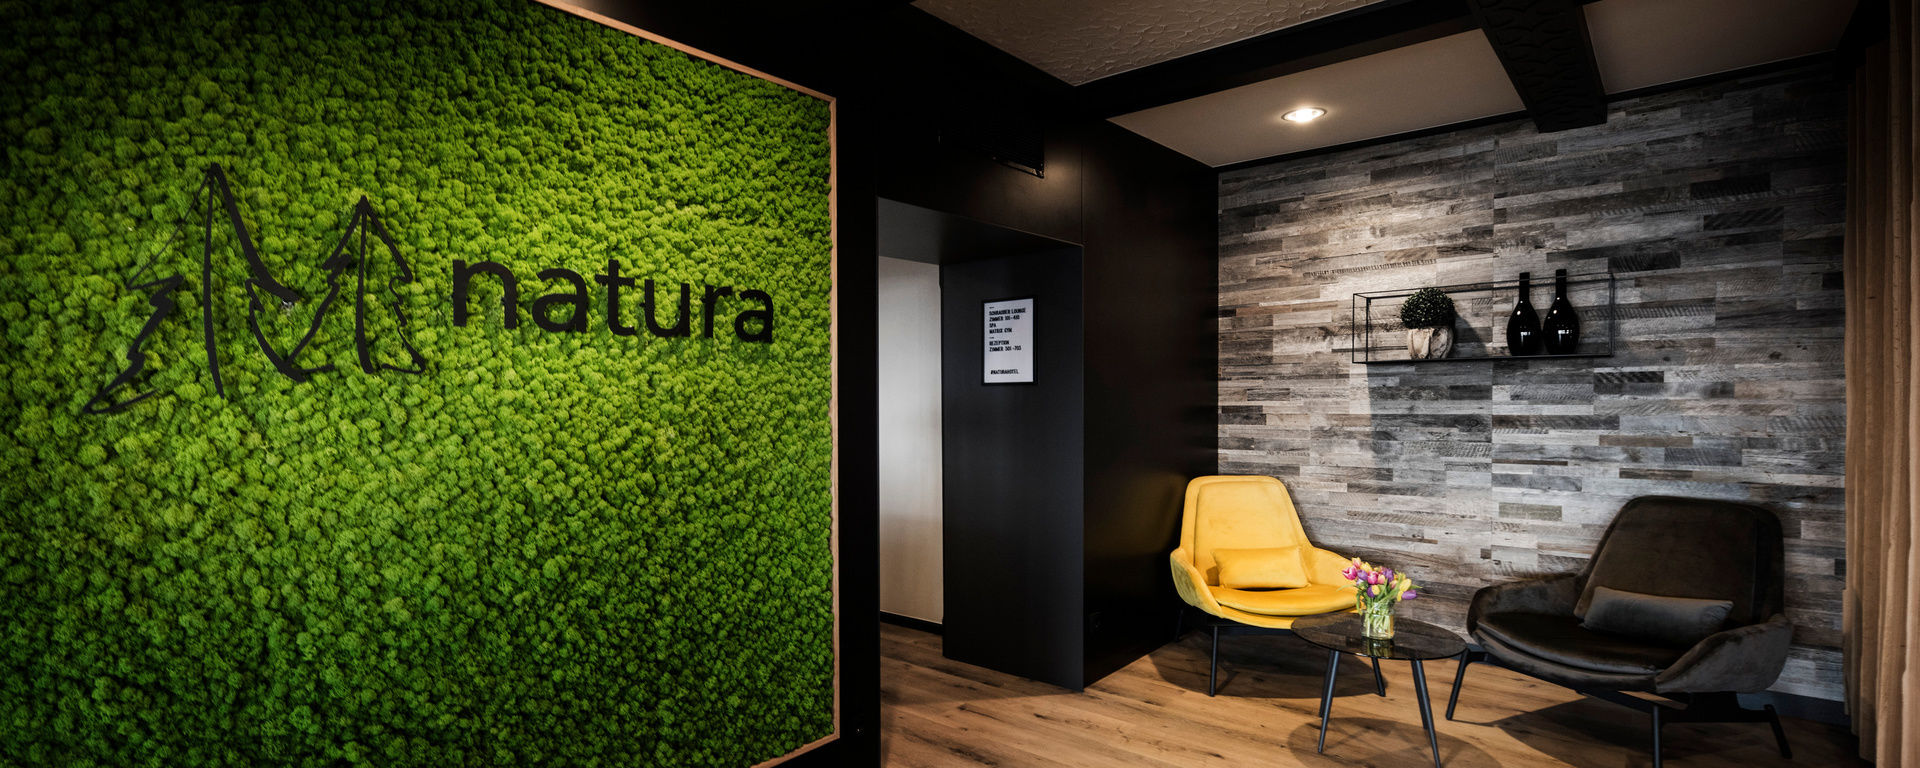 Natura Lounge in Bodenmais